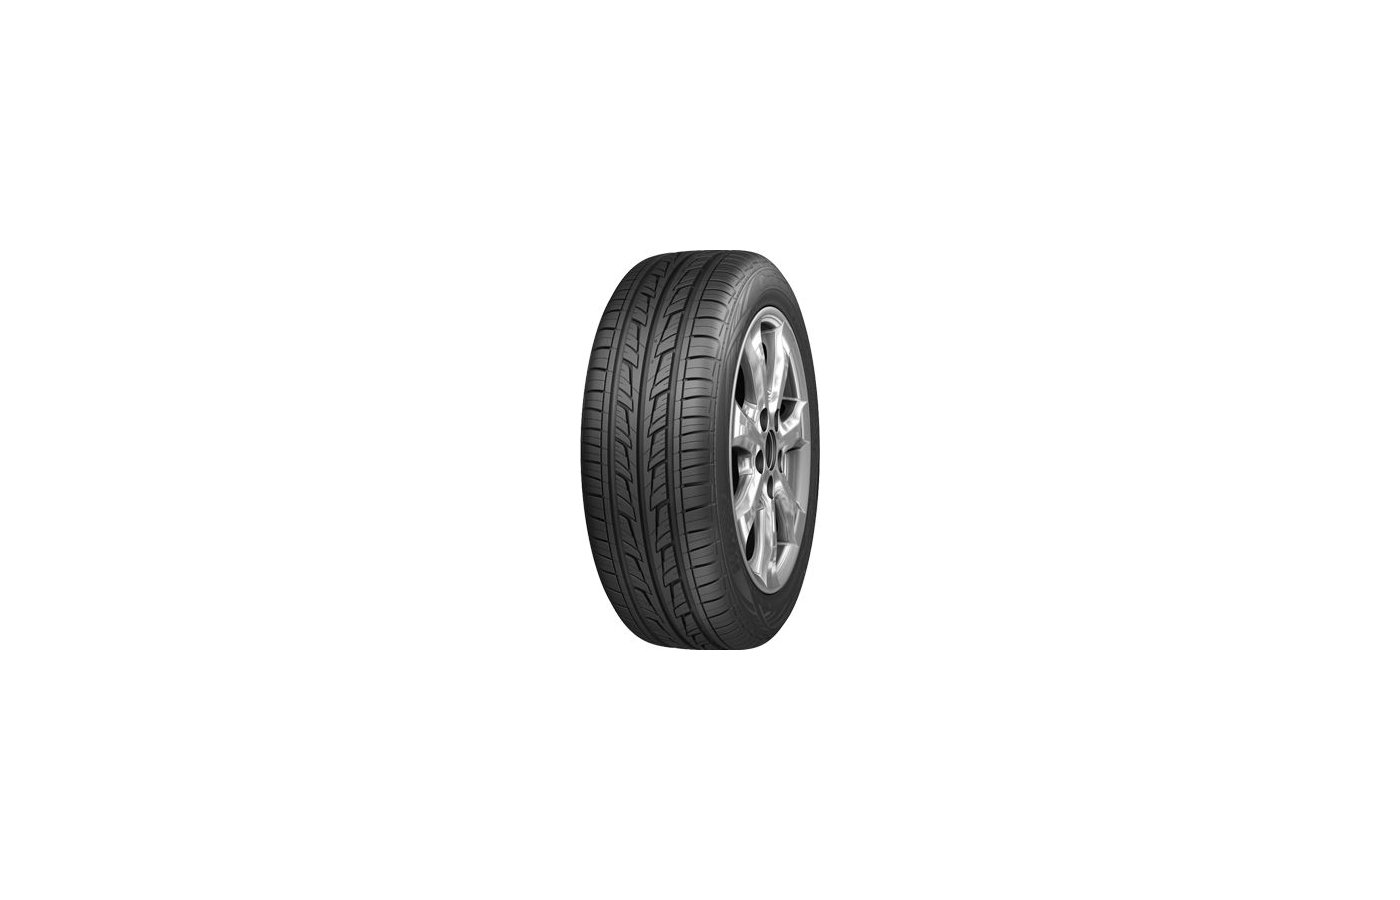 Шина Cordiant Road Runner PS-1 185/70 R14 TL 88H